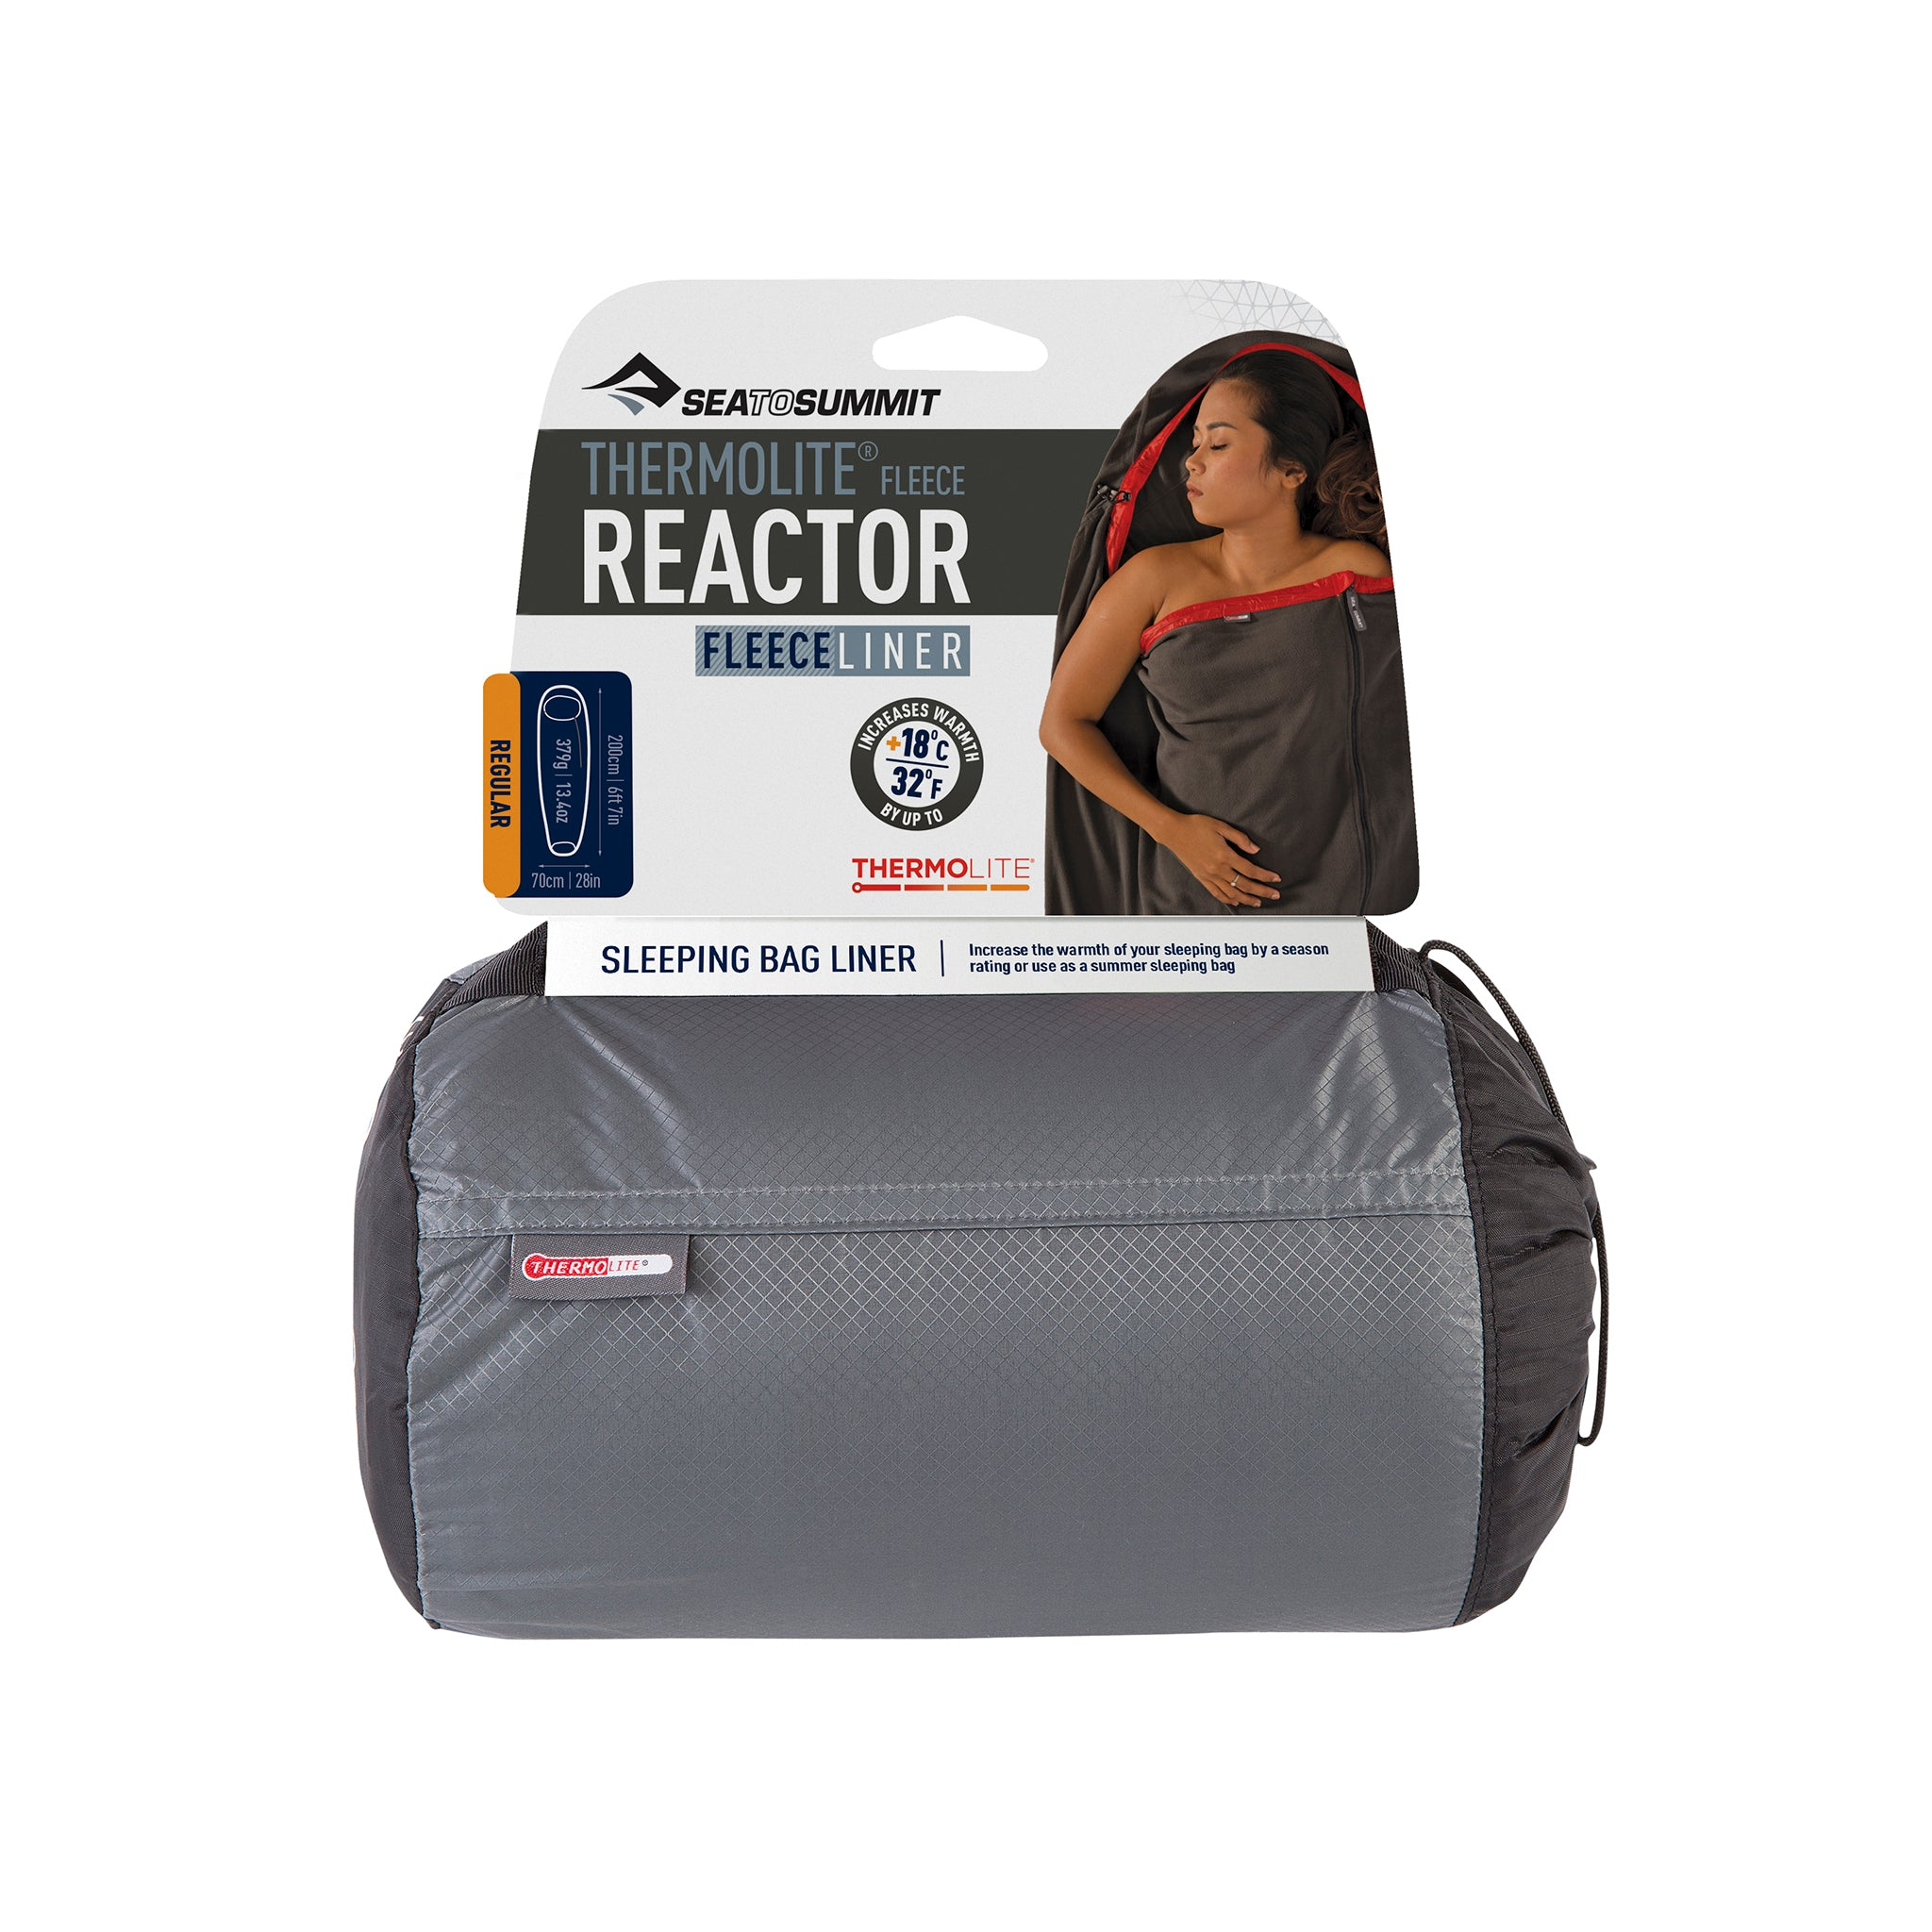 Reactor Fleece Liner (adds up to 32°F)